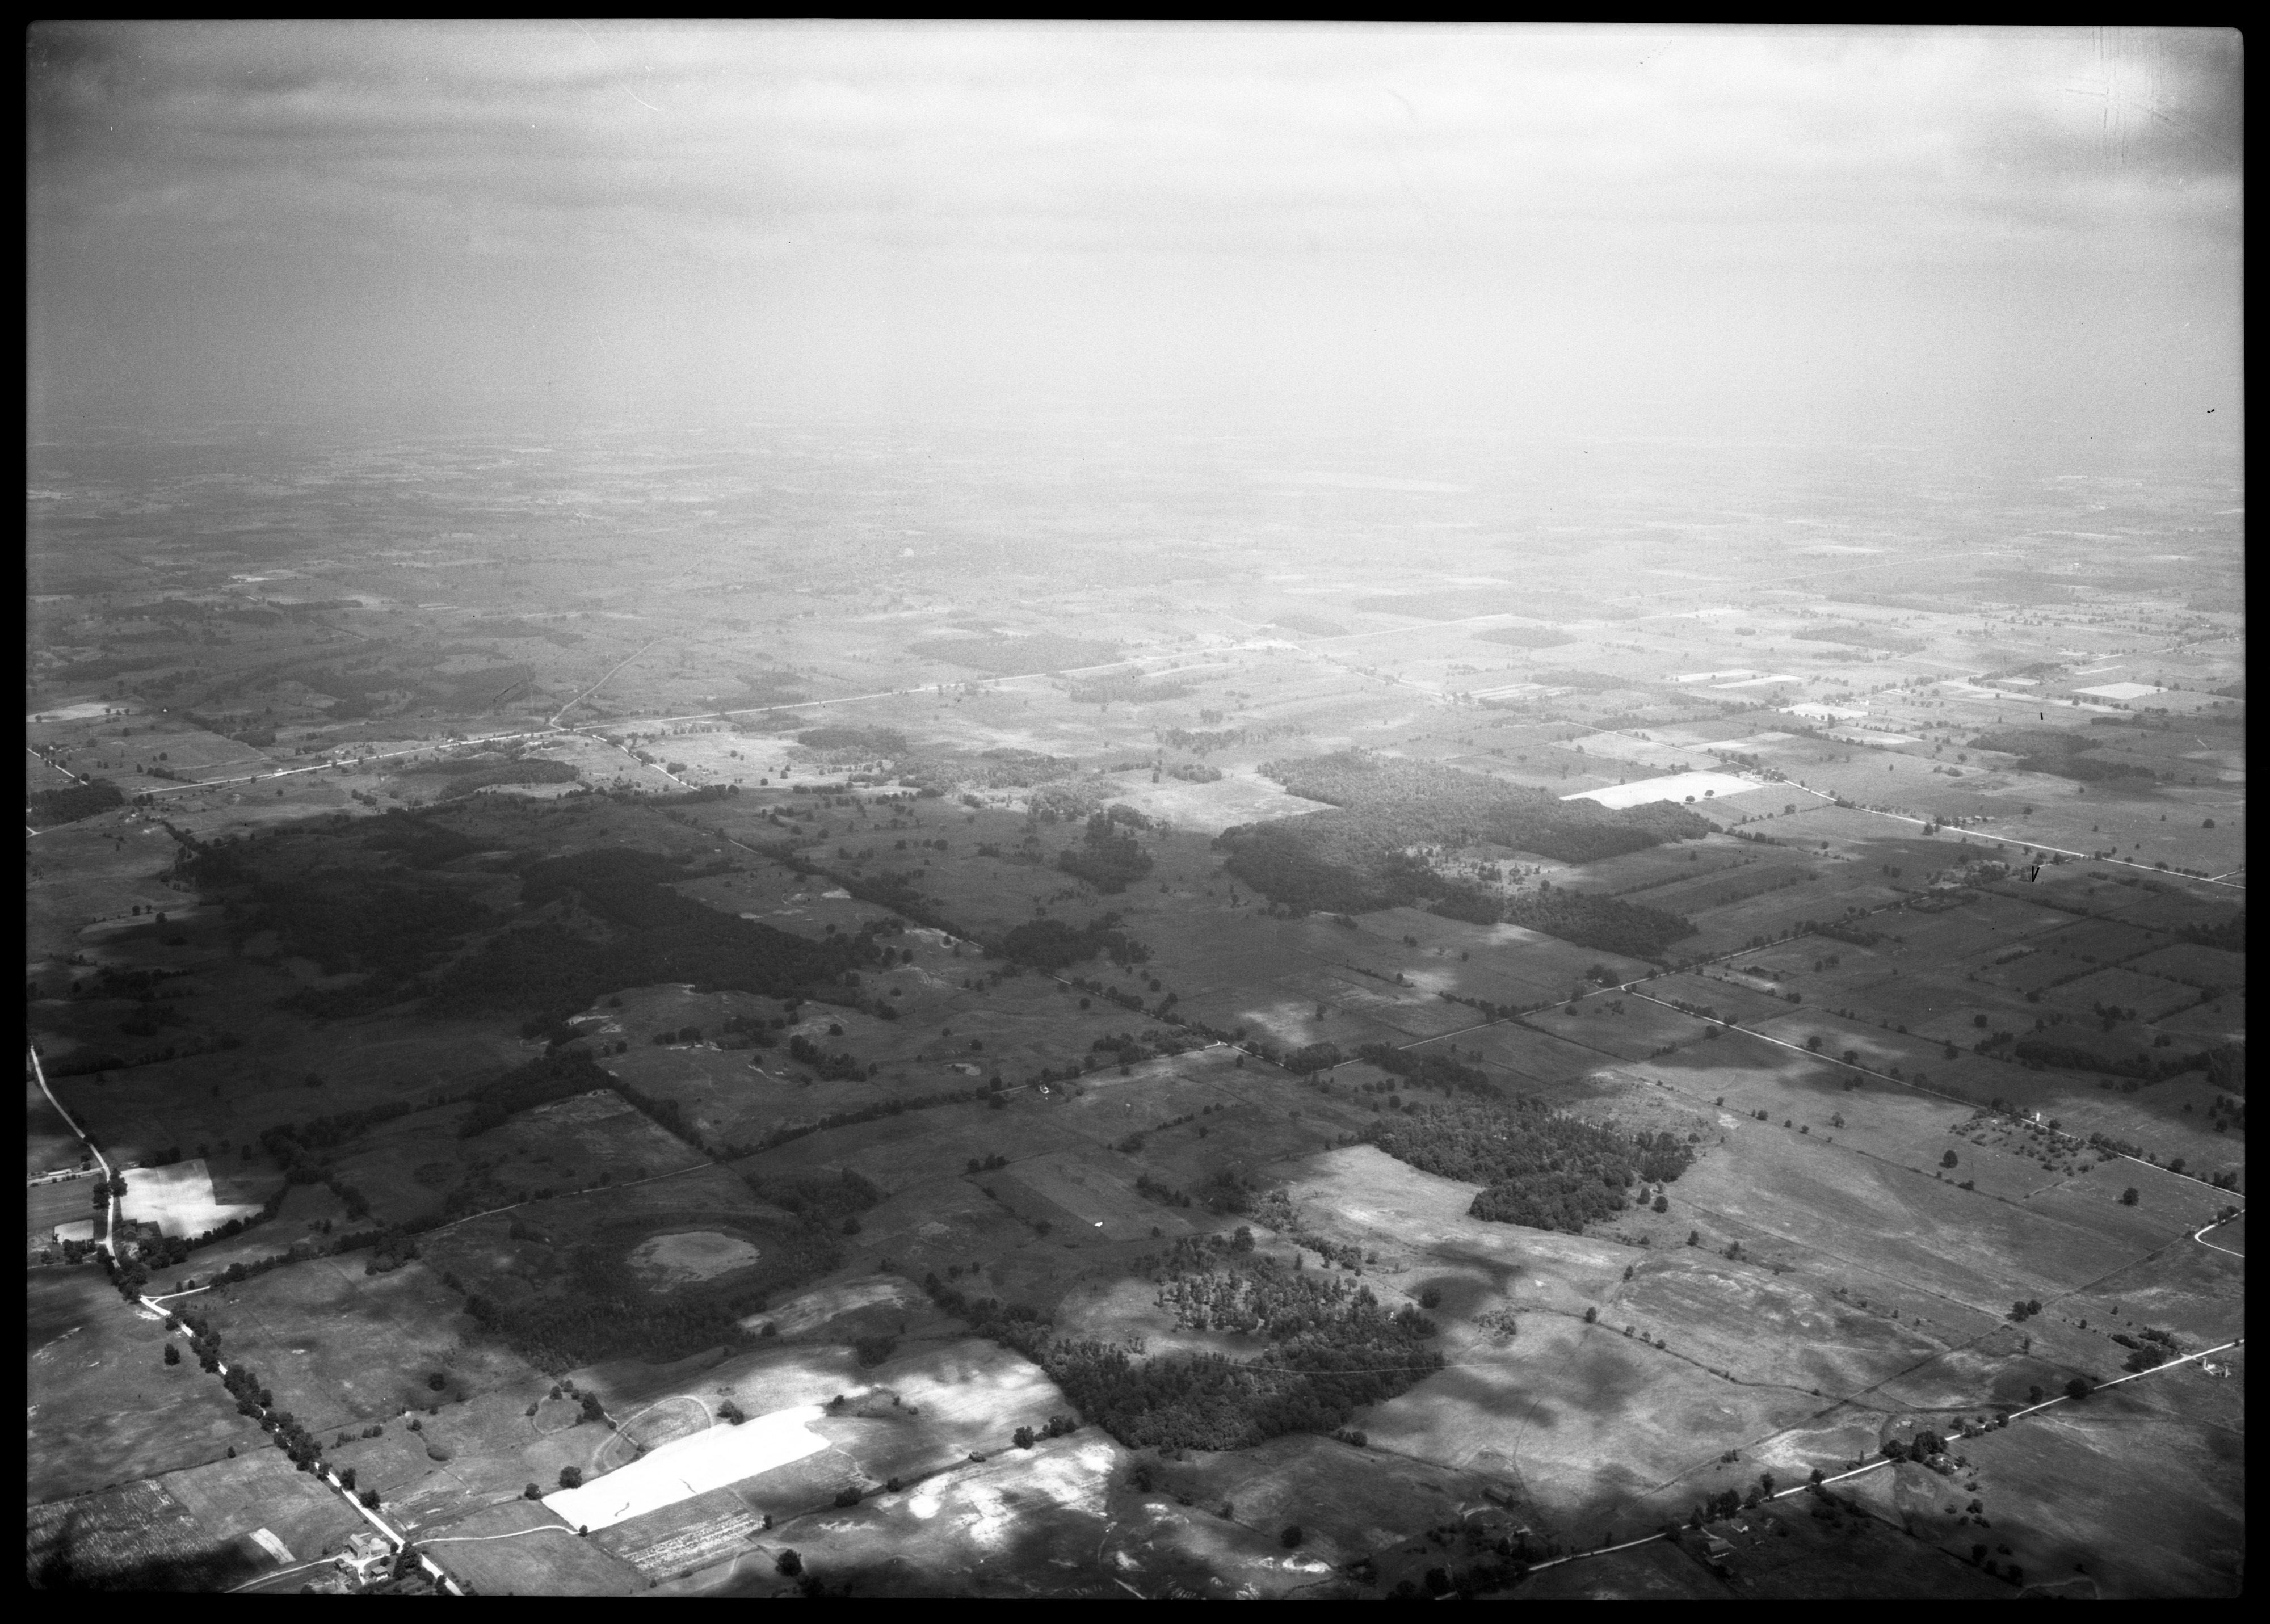 Aerial Photograph of Sylvan Township, August 1949 image